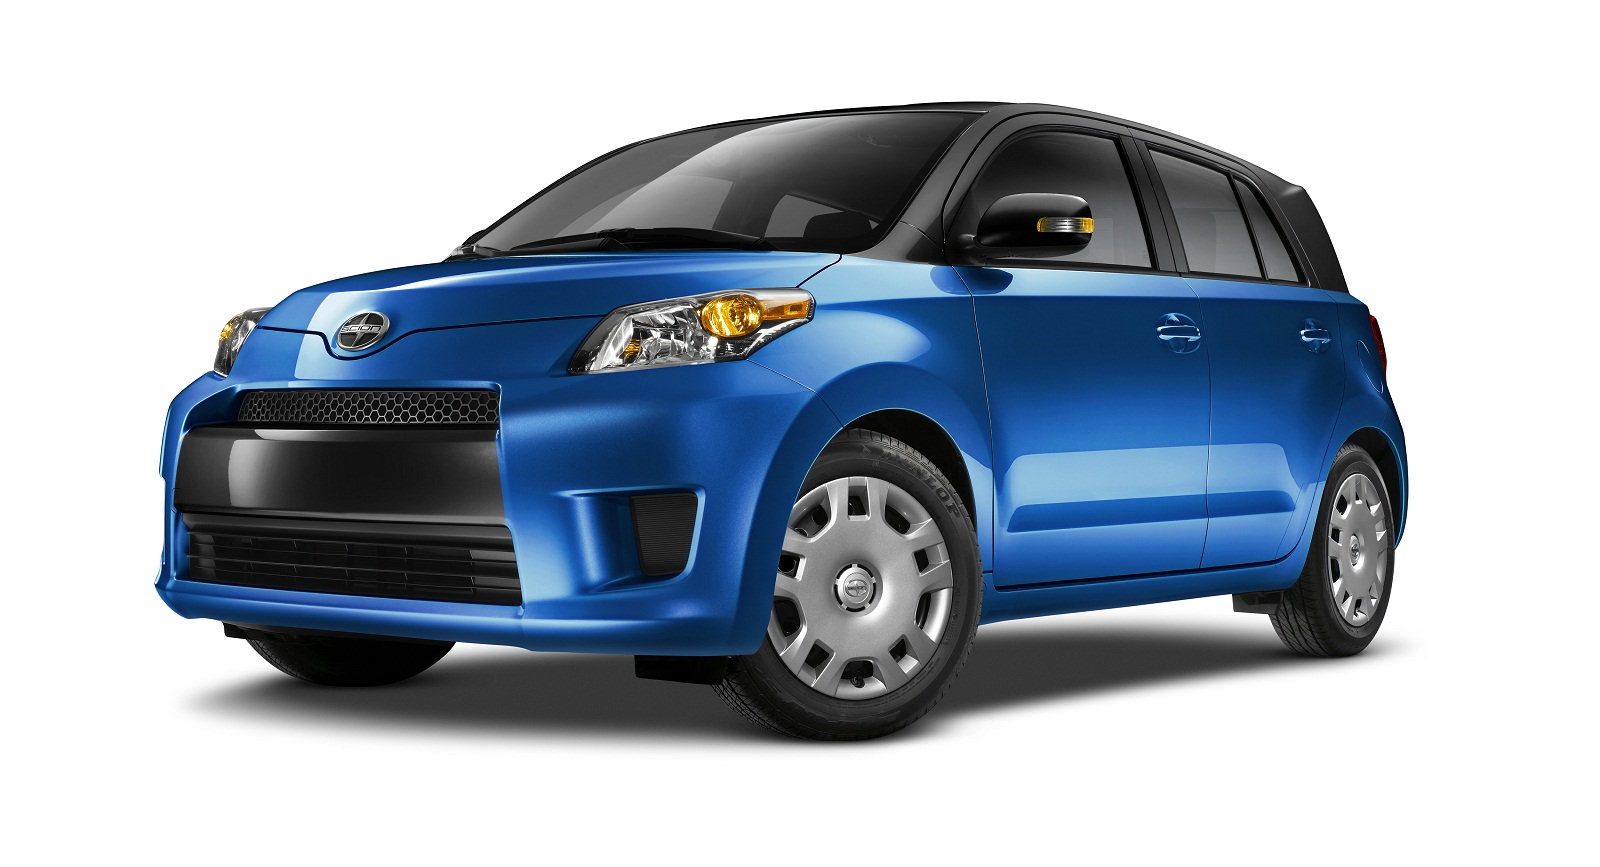 new and used scion xd prices photos reviews specs the car connection. Black Bedroom Furniture Sets. Home Design Ideas